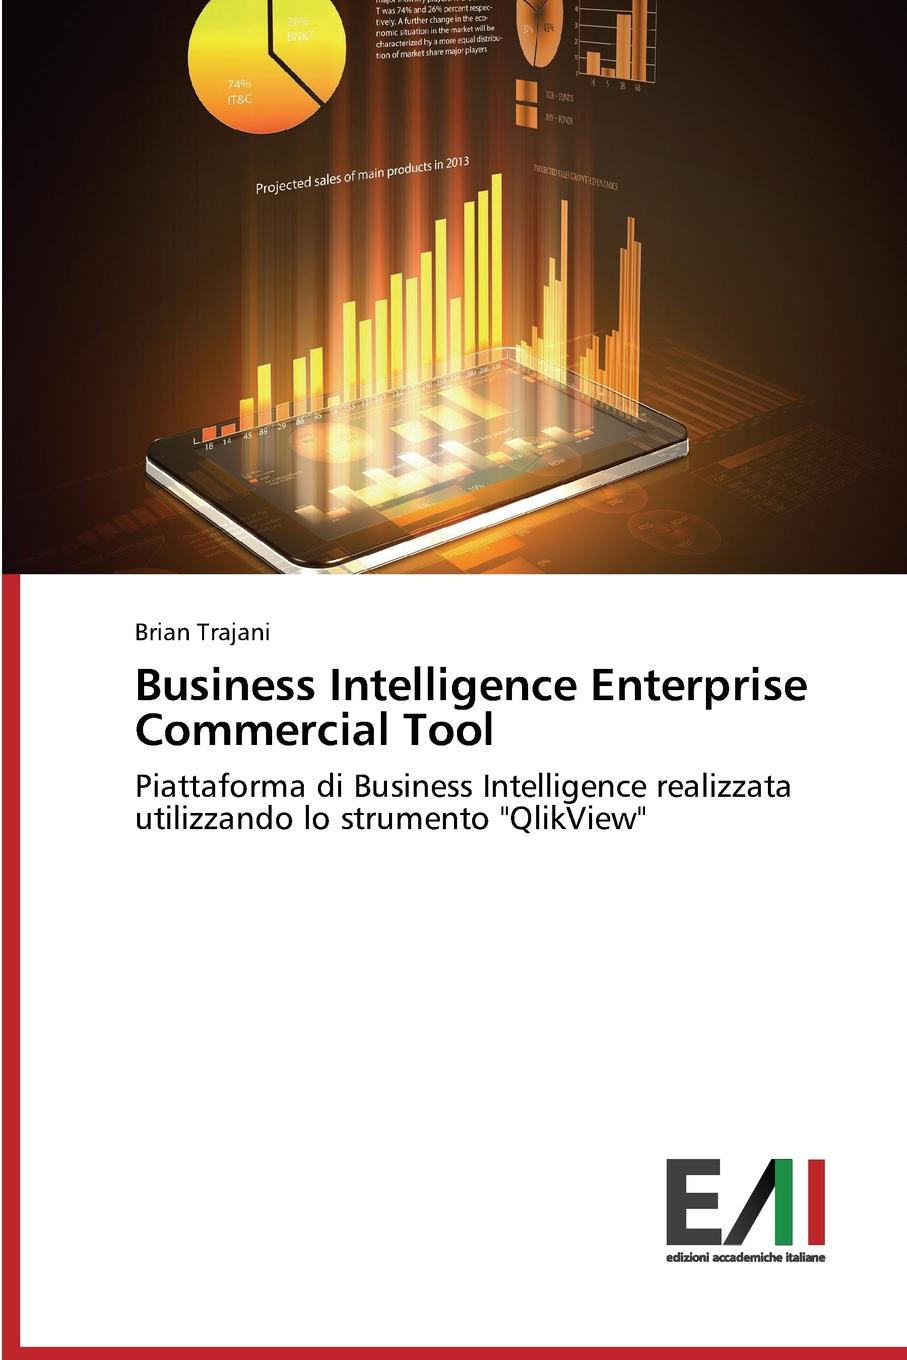 Trajani Brian Business Intelligence Enterprise Commercial Tool